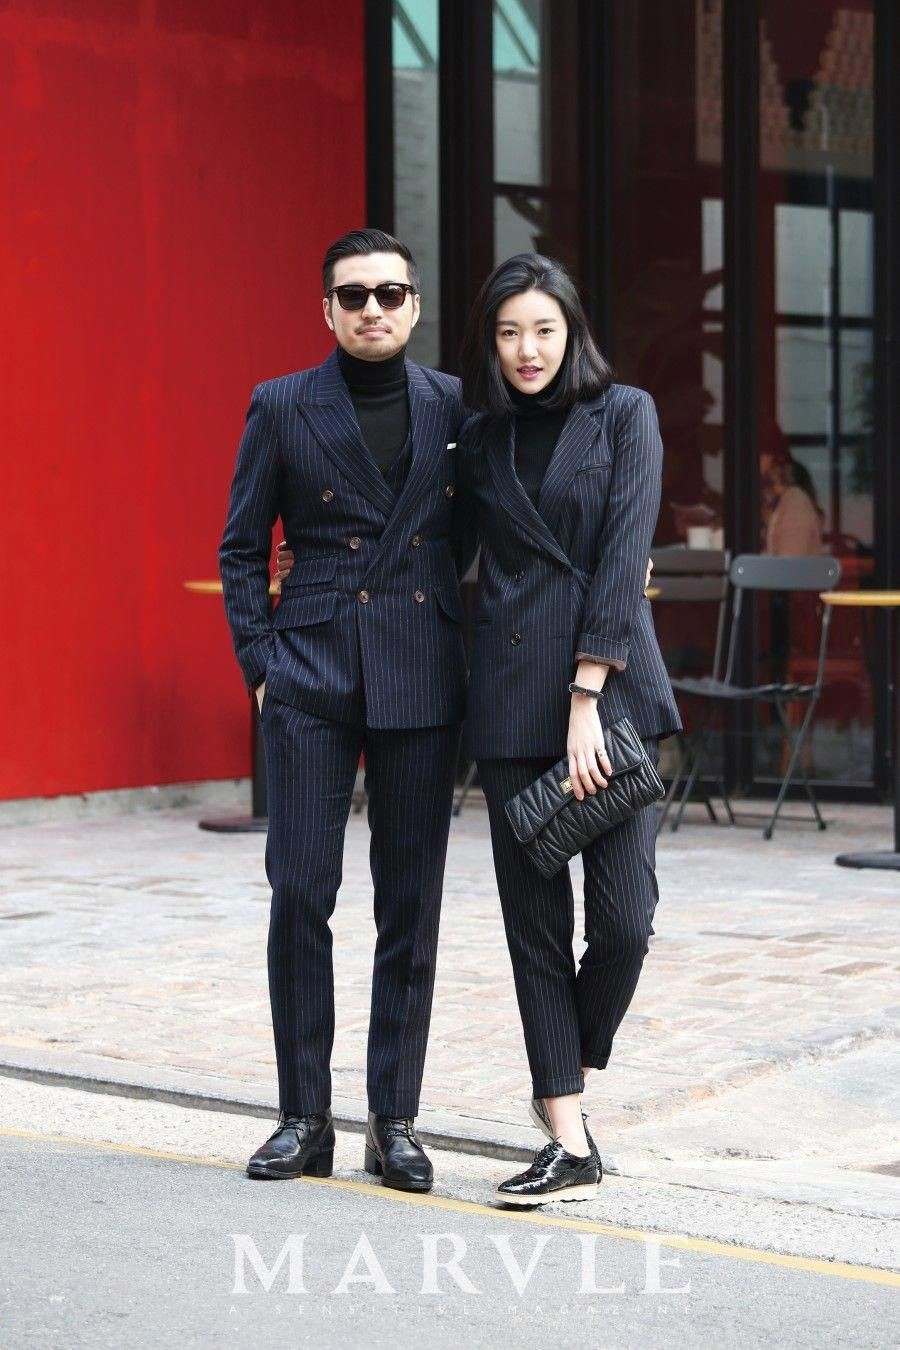 His And Hers Matching Black Formal Outfits